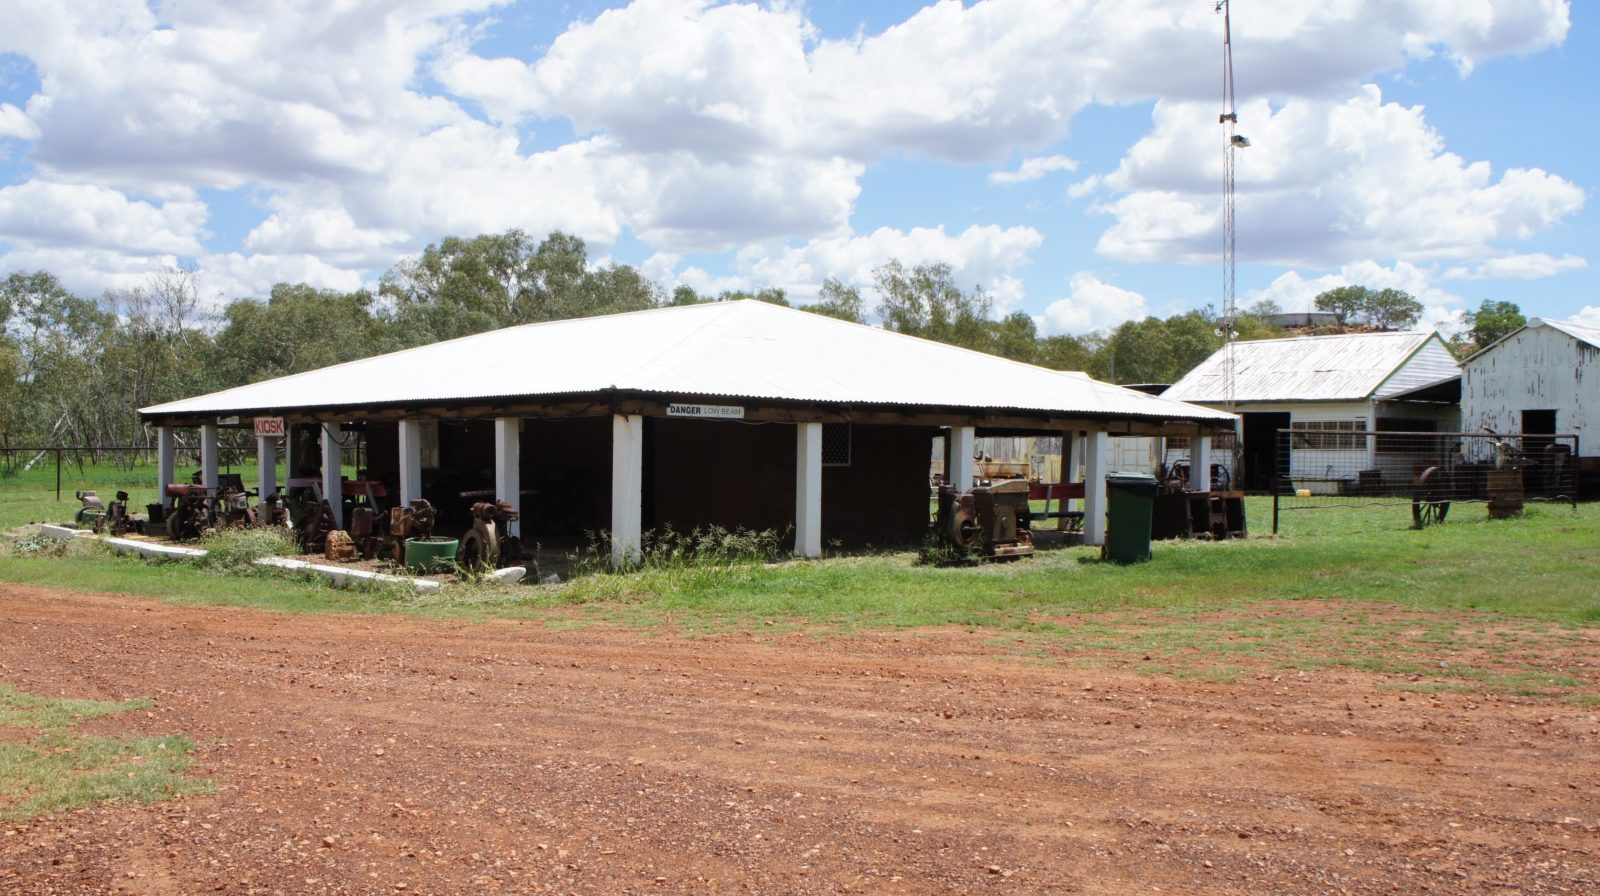 The mud hut building is used as a kiosk / bar for guests and visitors.